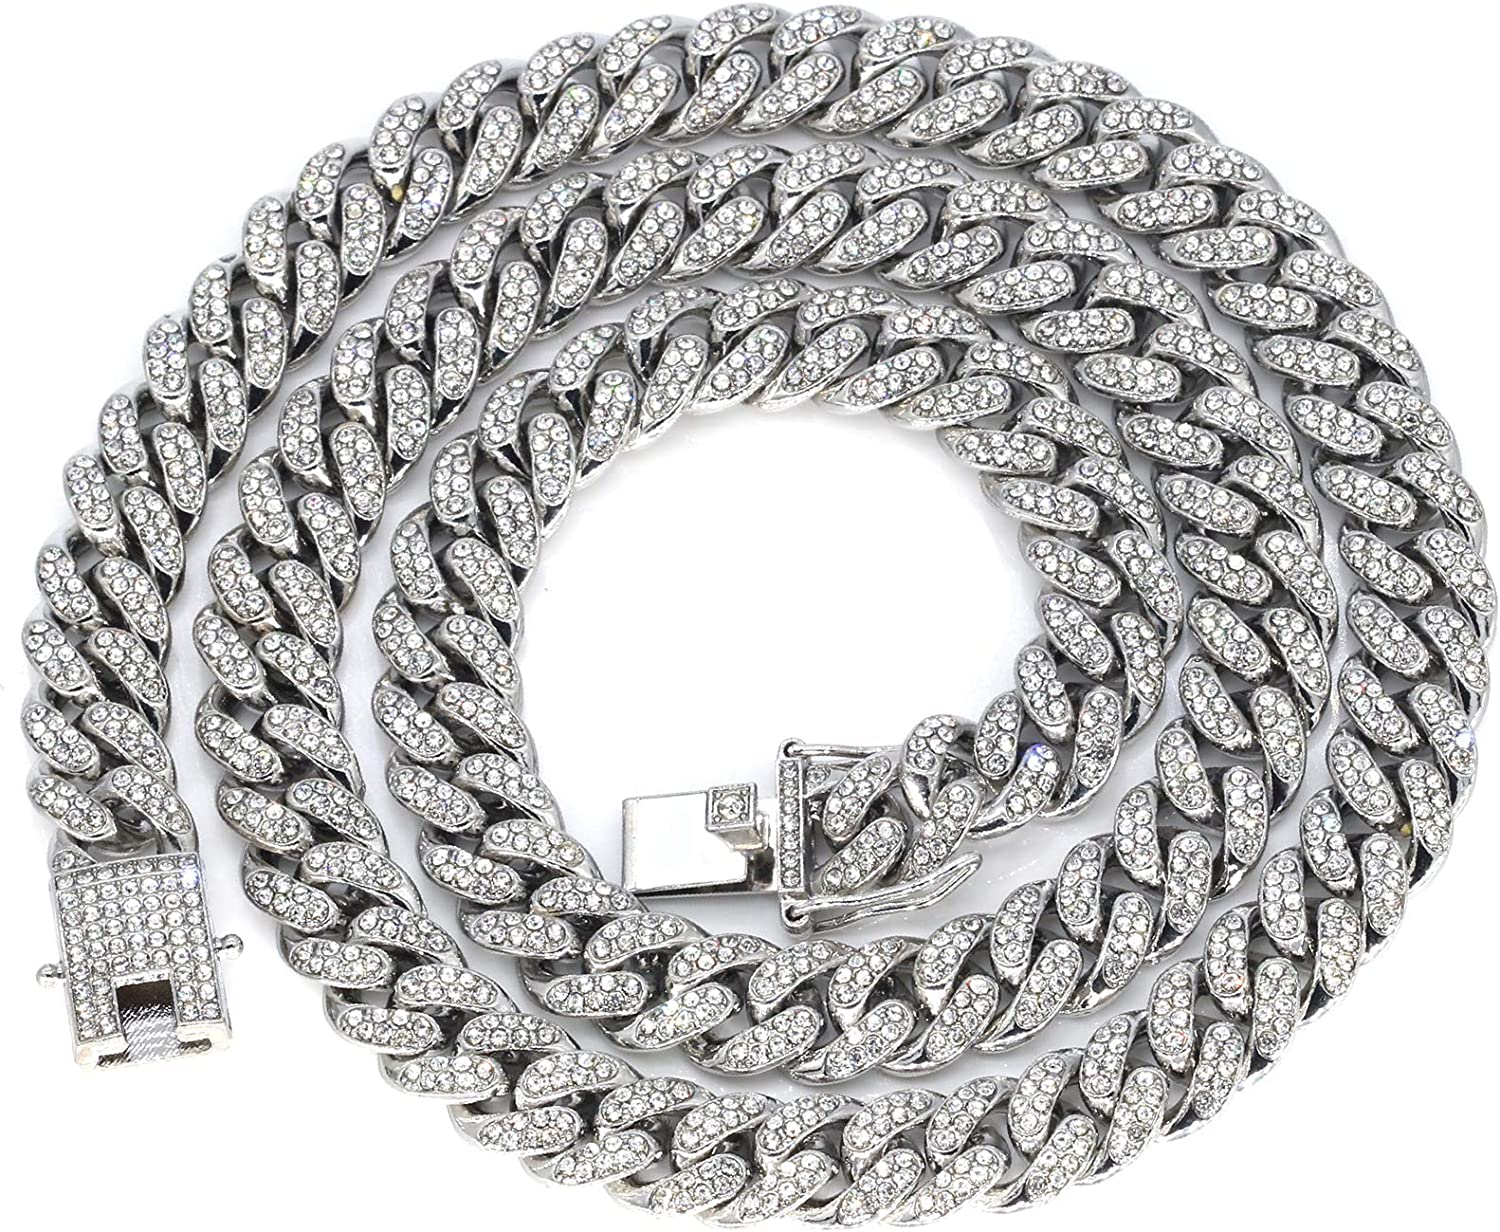 Max 75% OFF Mens Limited price sale Iced Out Hip Hop Silver or Gold Tone Miami Cuban Link Ch CZ